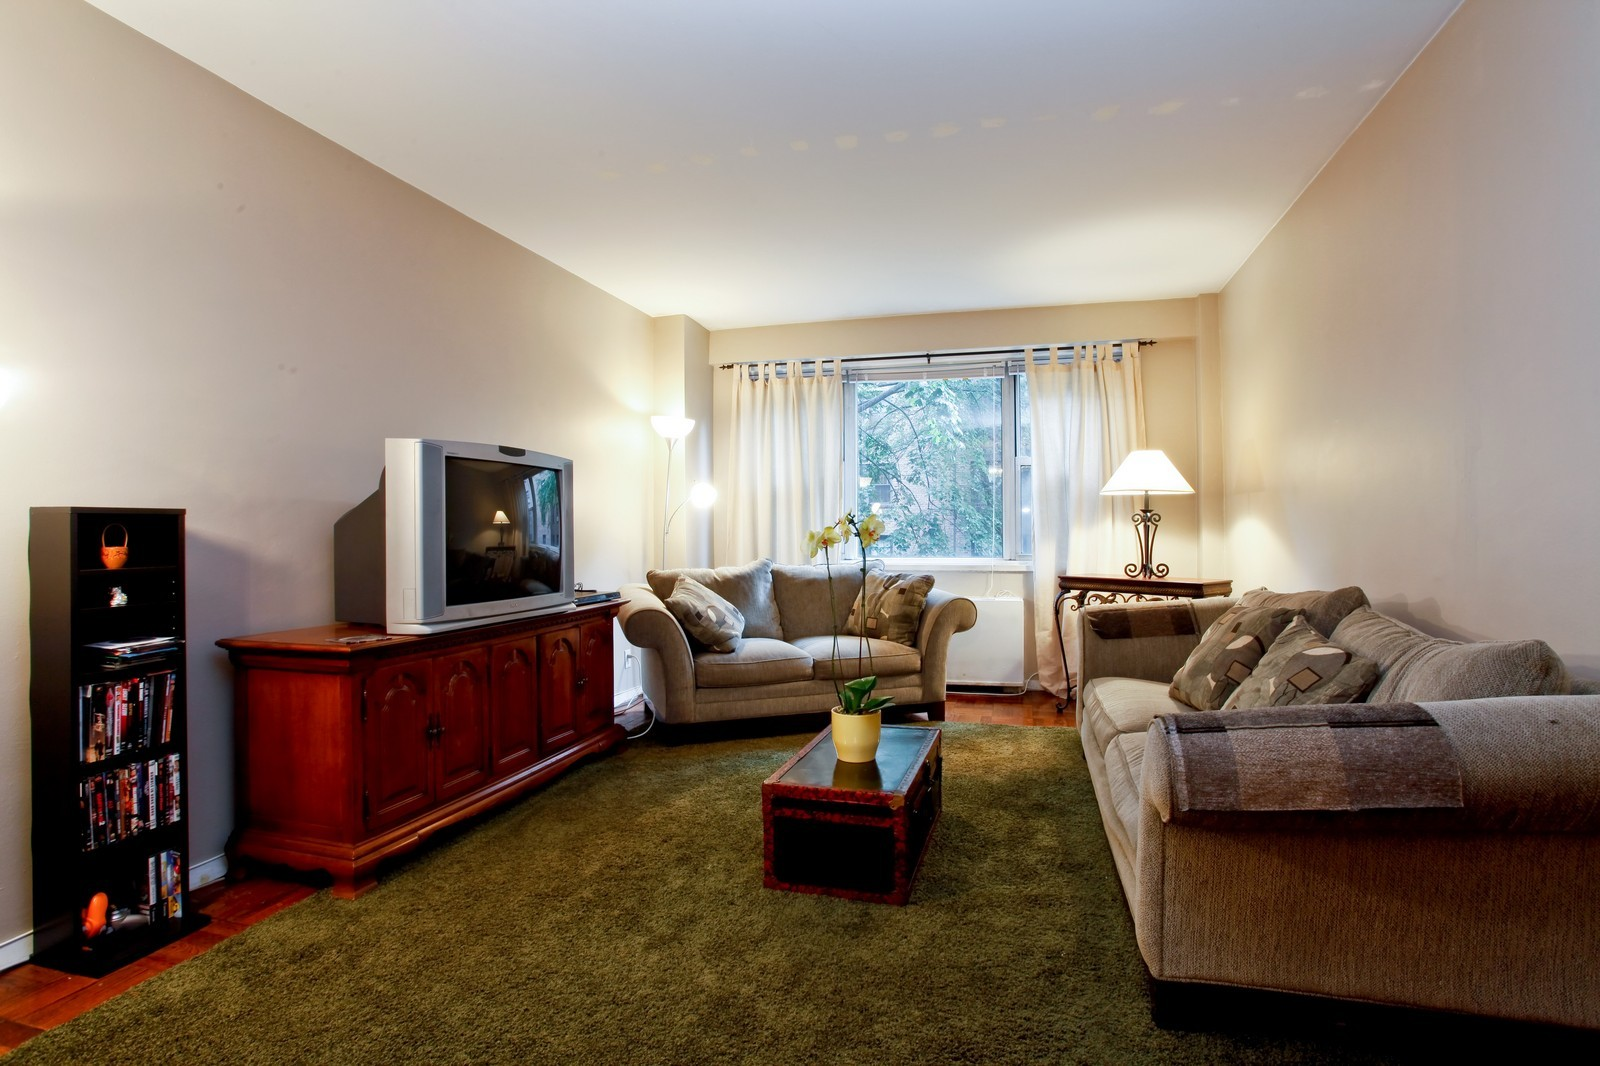 Real Estate Photography - 230 Garth Rd, Apt 2A1, Scarsdale, NY, 10583 - Living Room